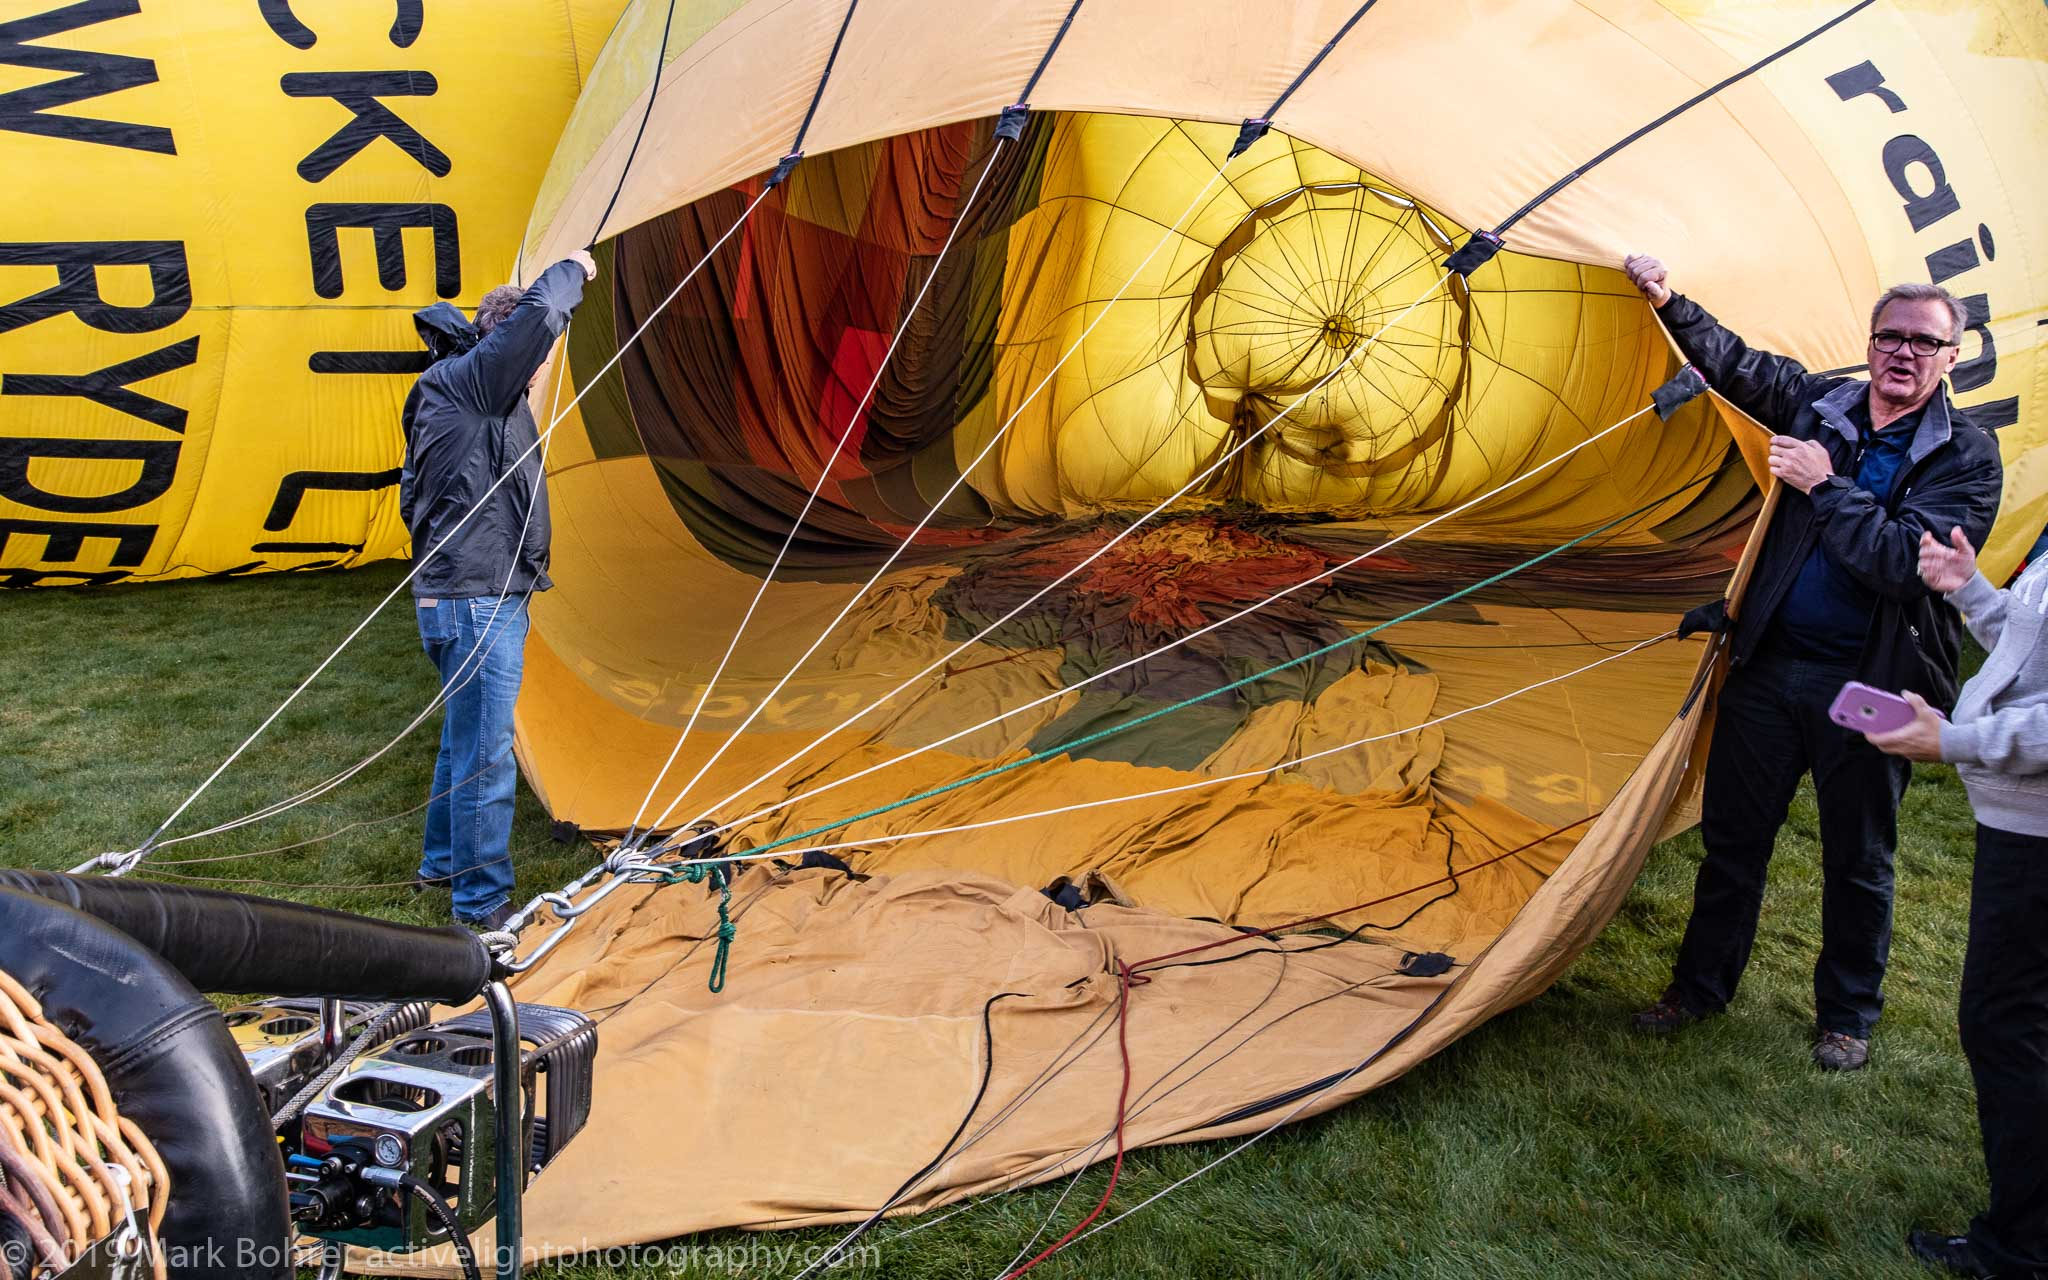 Cold inflation - Albuquerque International Balloon Fiesta, Active Light Photography